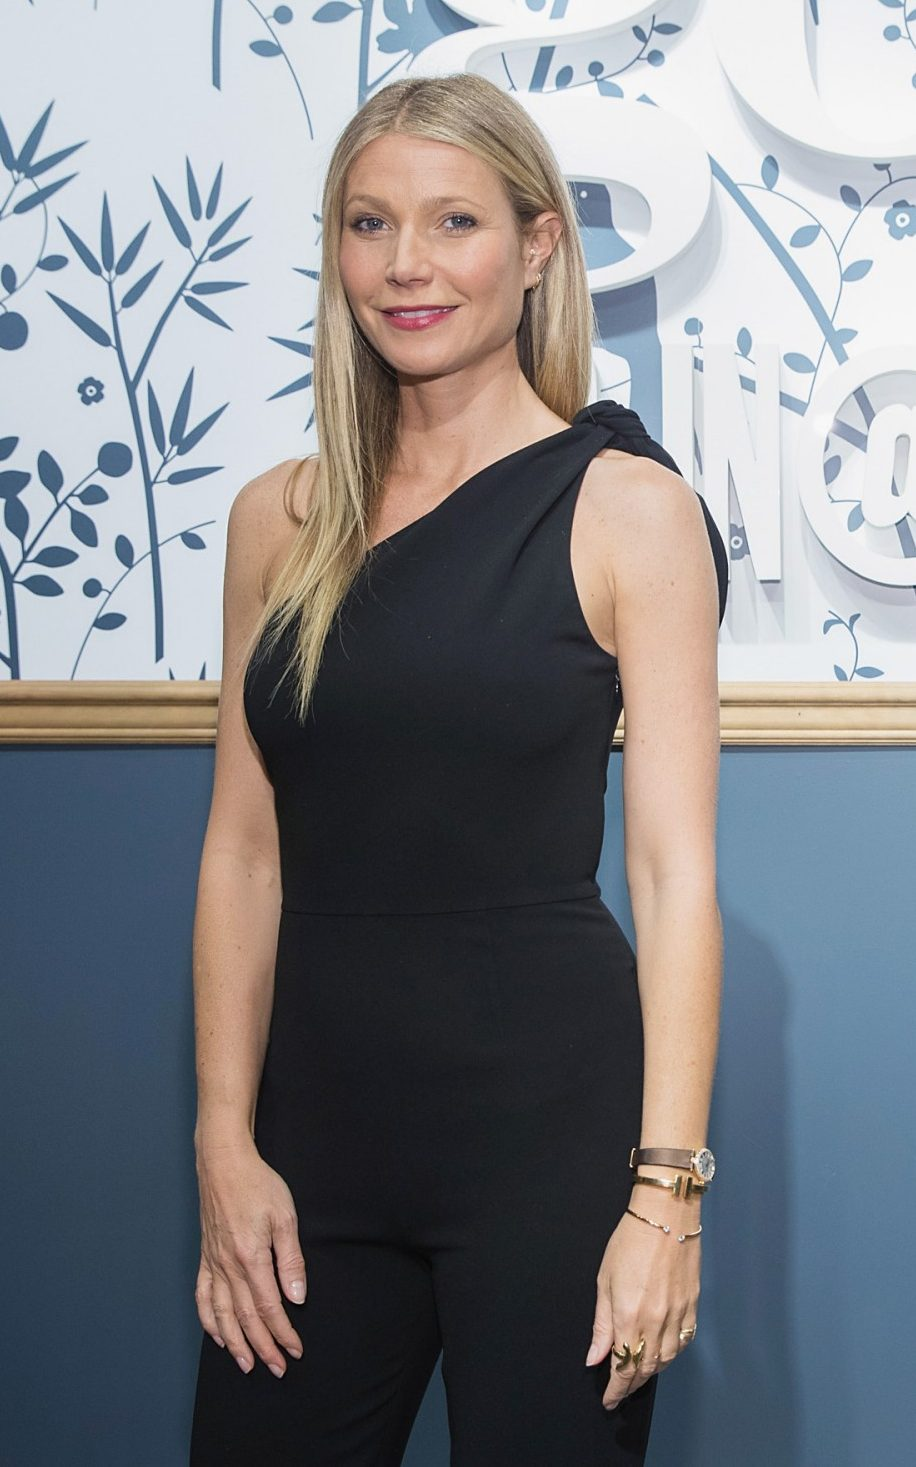 The Gwyneth Paltrow Approved Health And Beauty Advice That